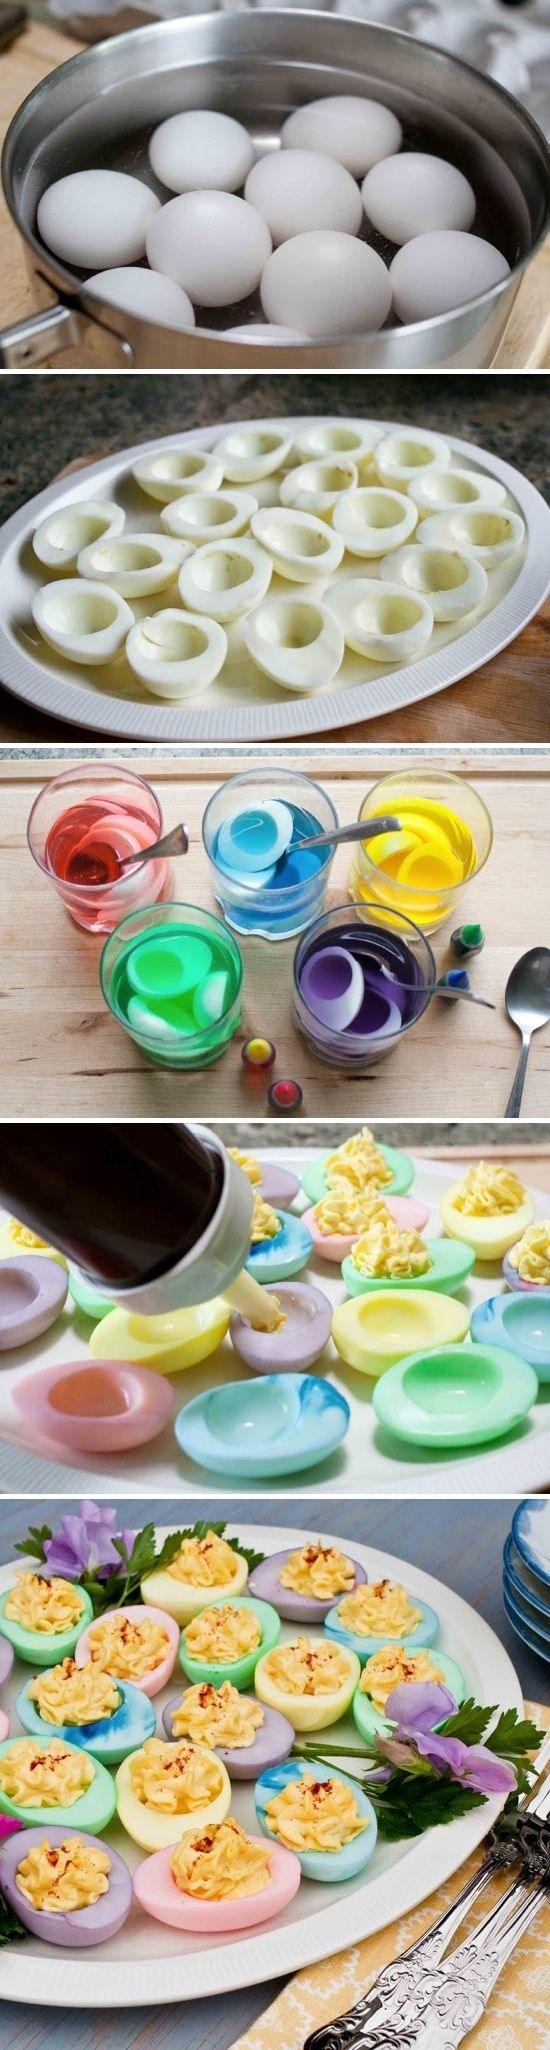 Colorful Deviled Eggs - making these for Easter this weekend!